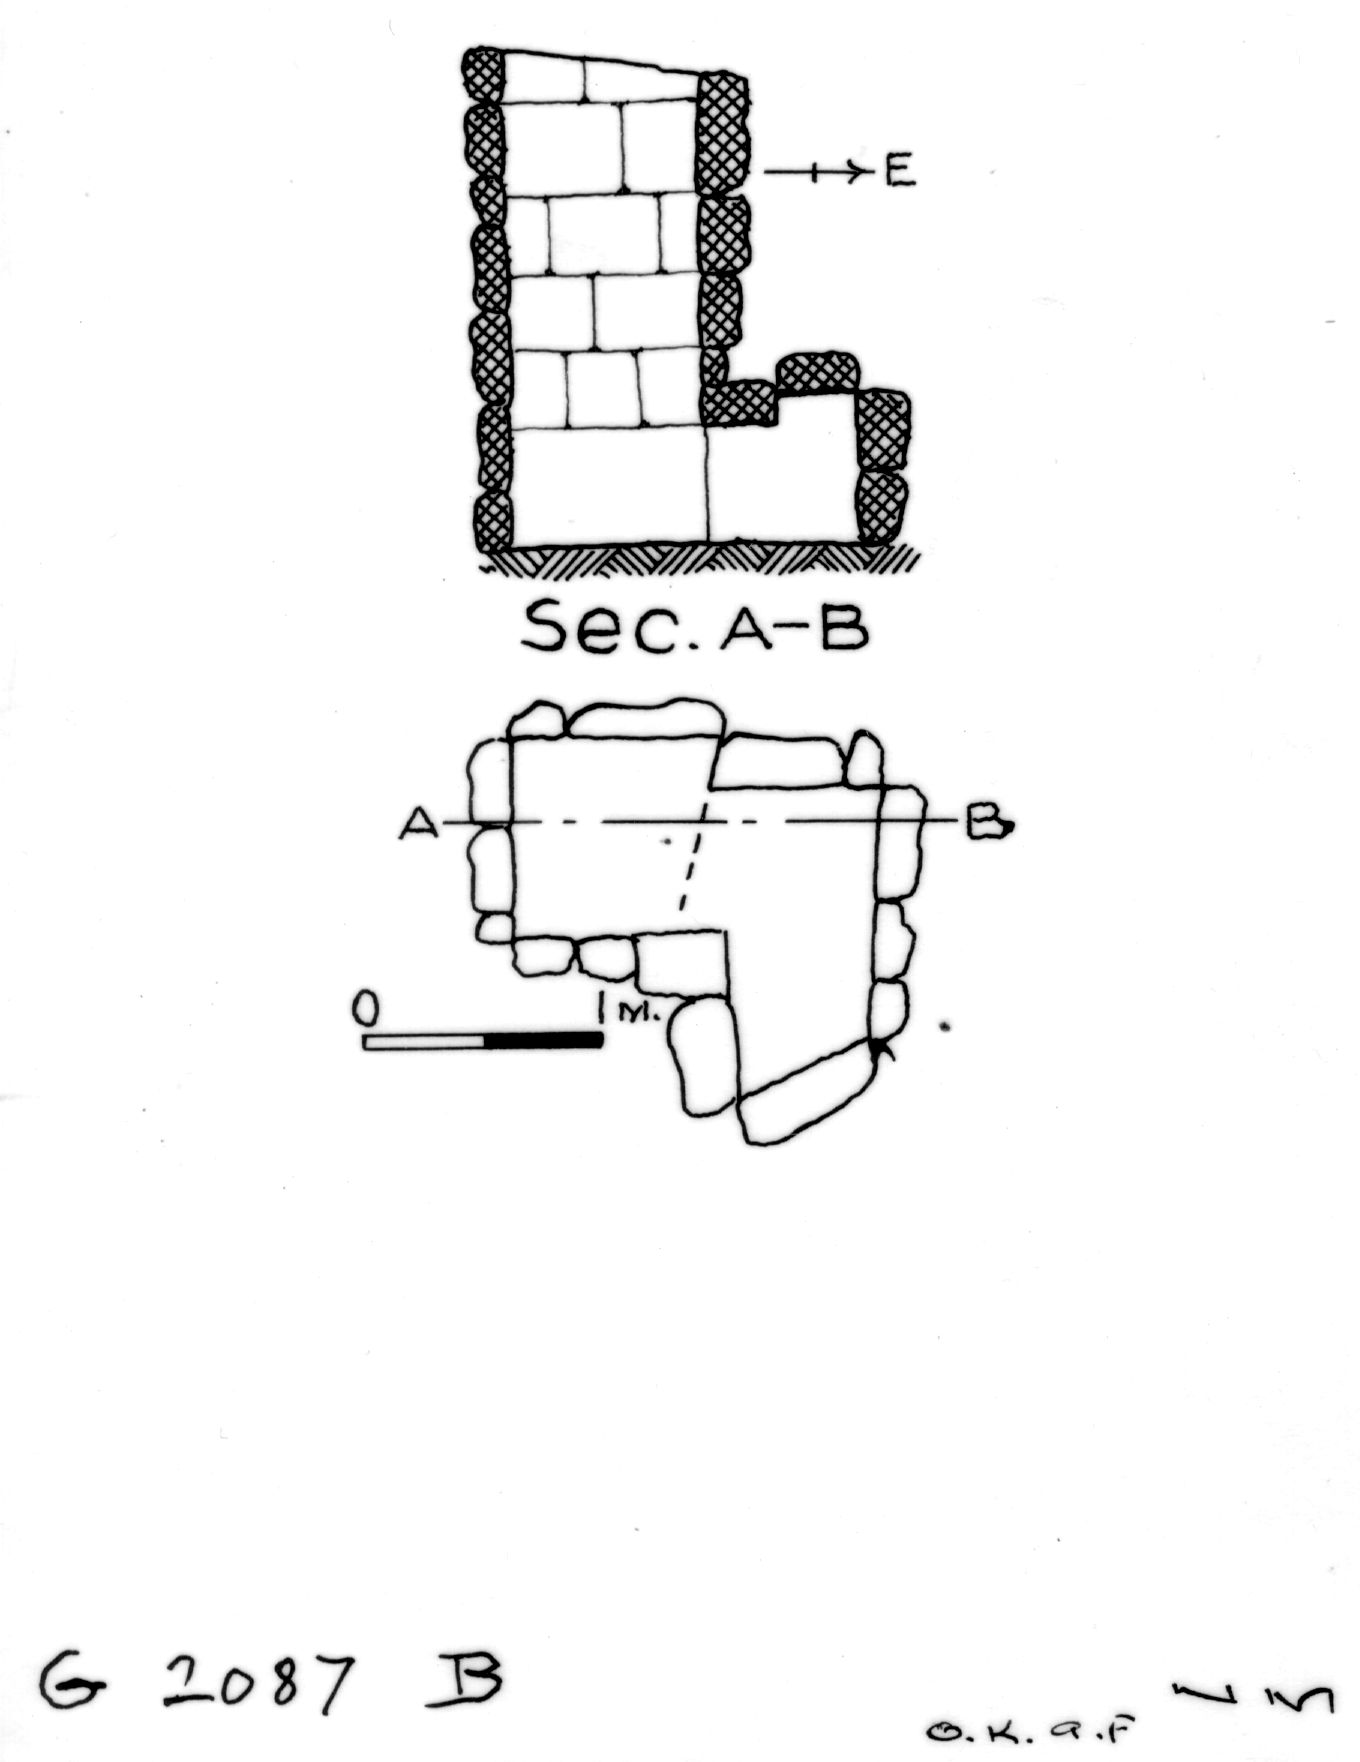 Maps and plans: G 2087, Shaft B